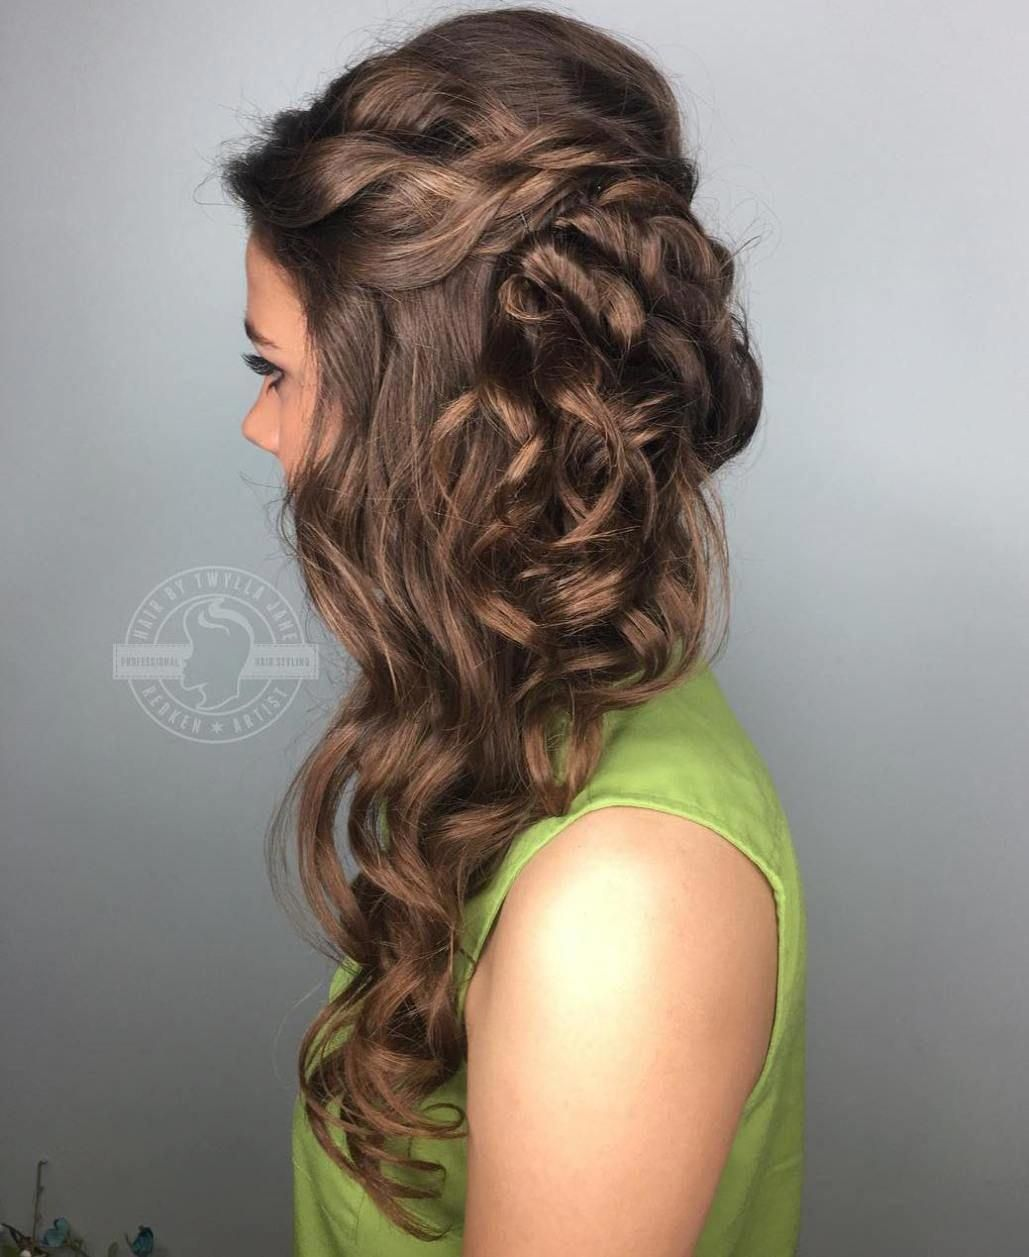 curly side downdo for long hair #promhairstylesforlonghair